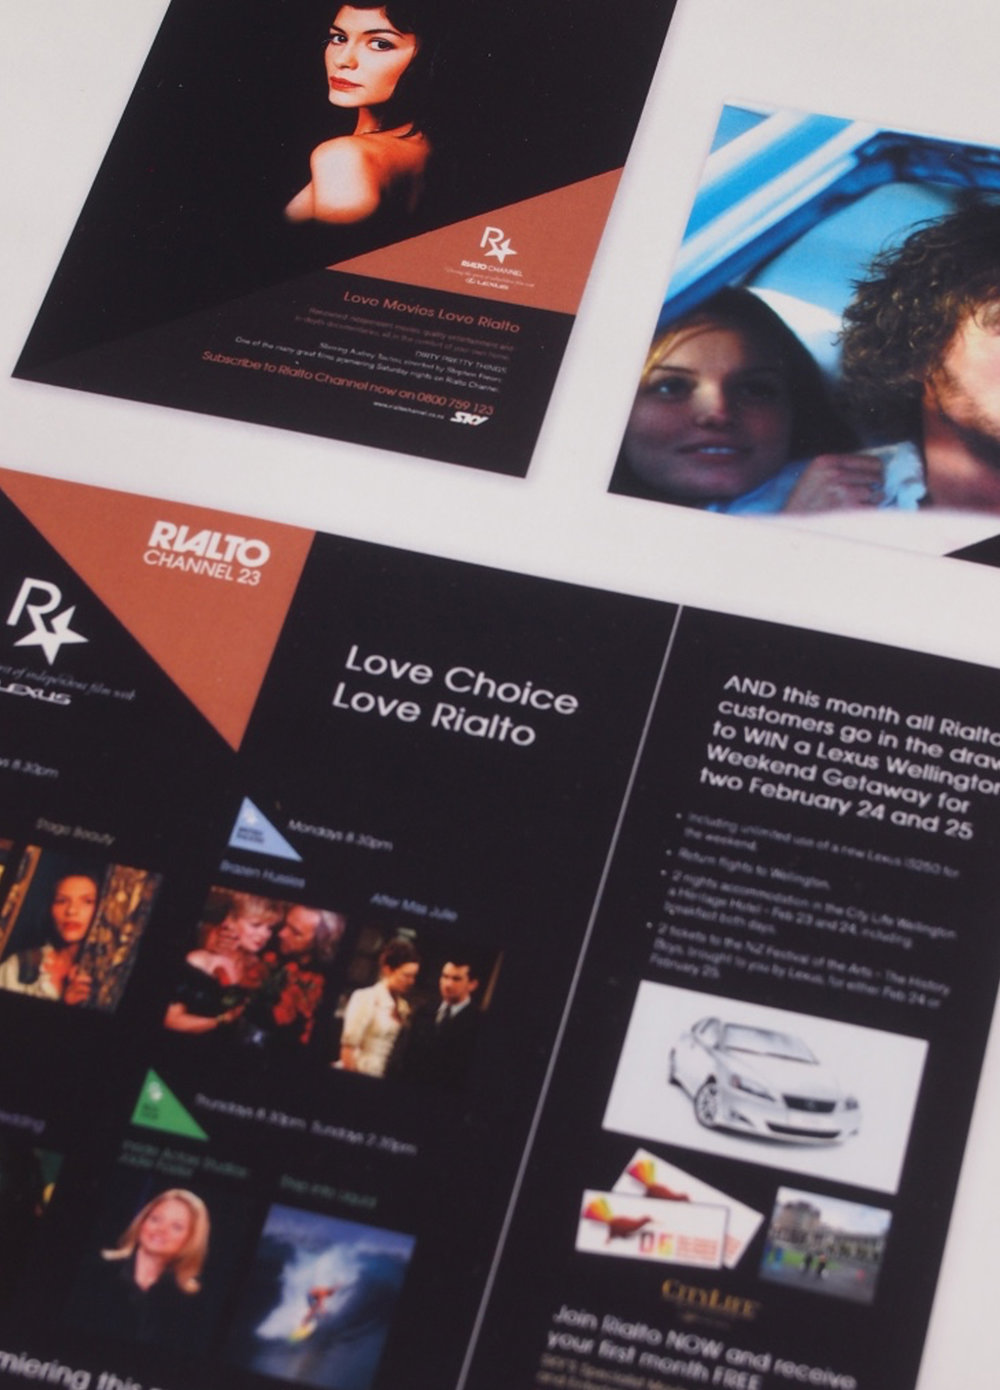 [Rialto Channel Ad Campaign 2006] Design layouts of ads, following the look and feel of the existing logo and Rialto branding.